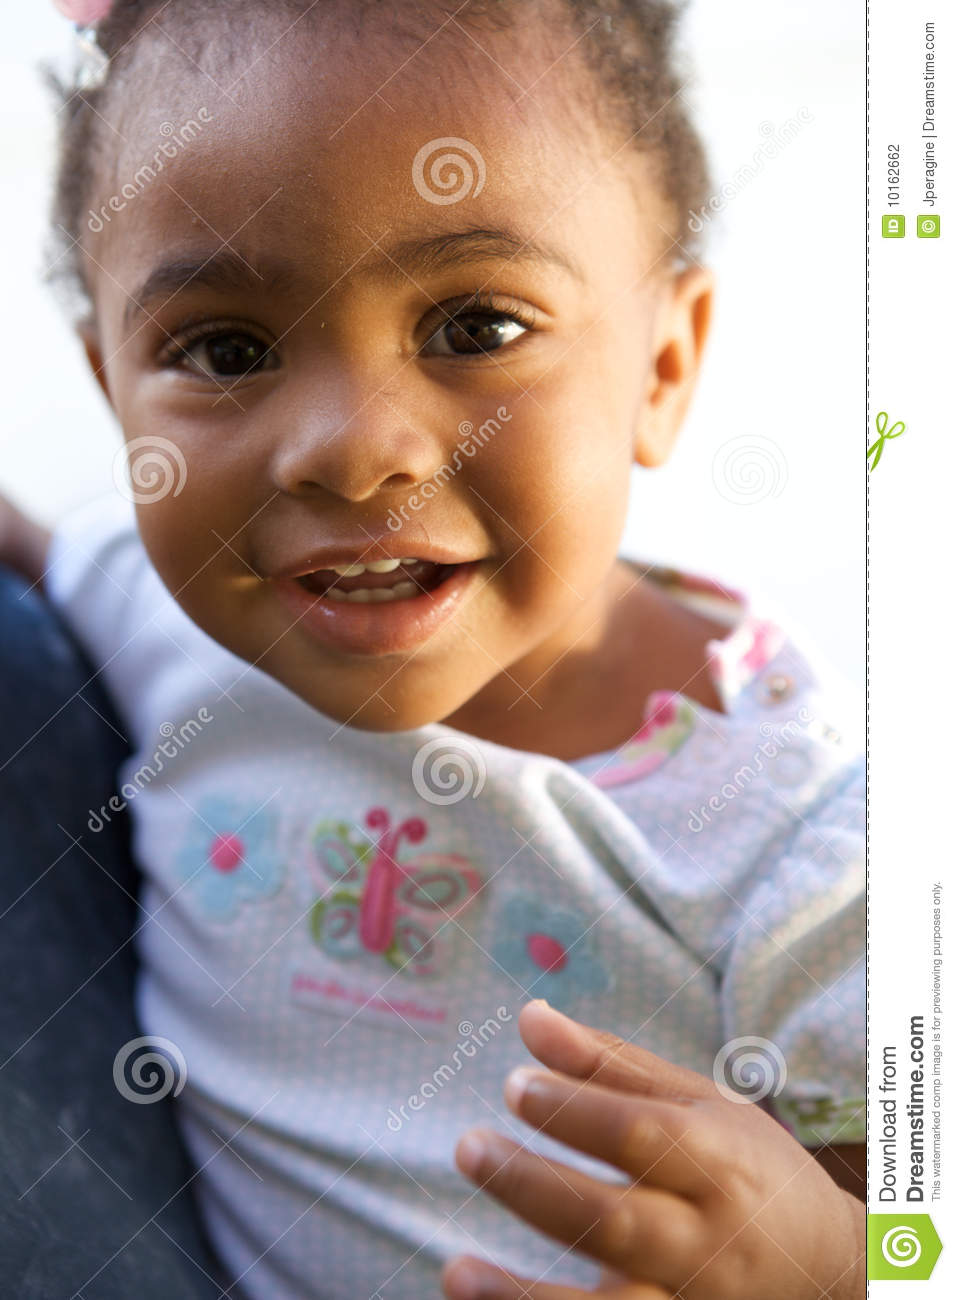 A Beautiful African American Baby Smiling Stock